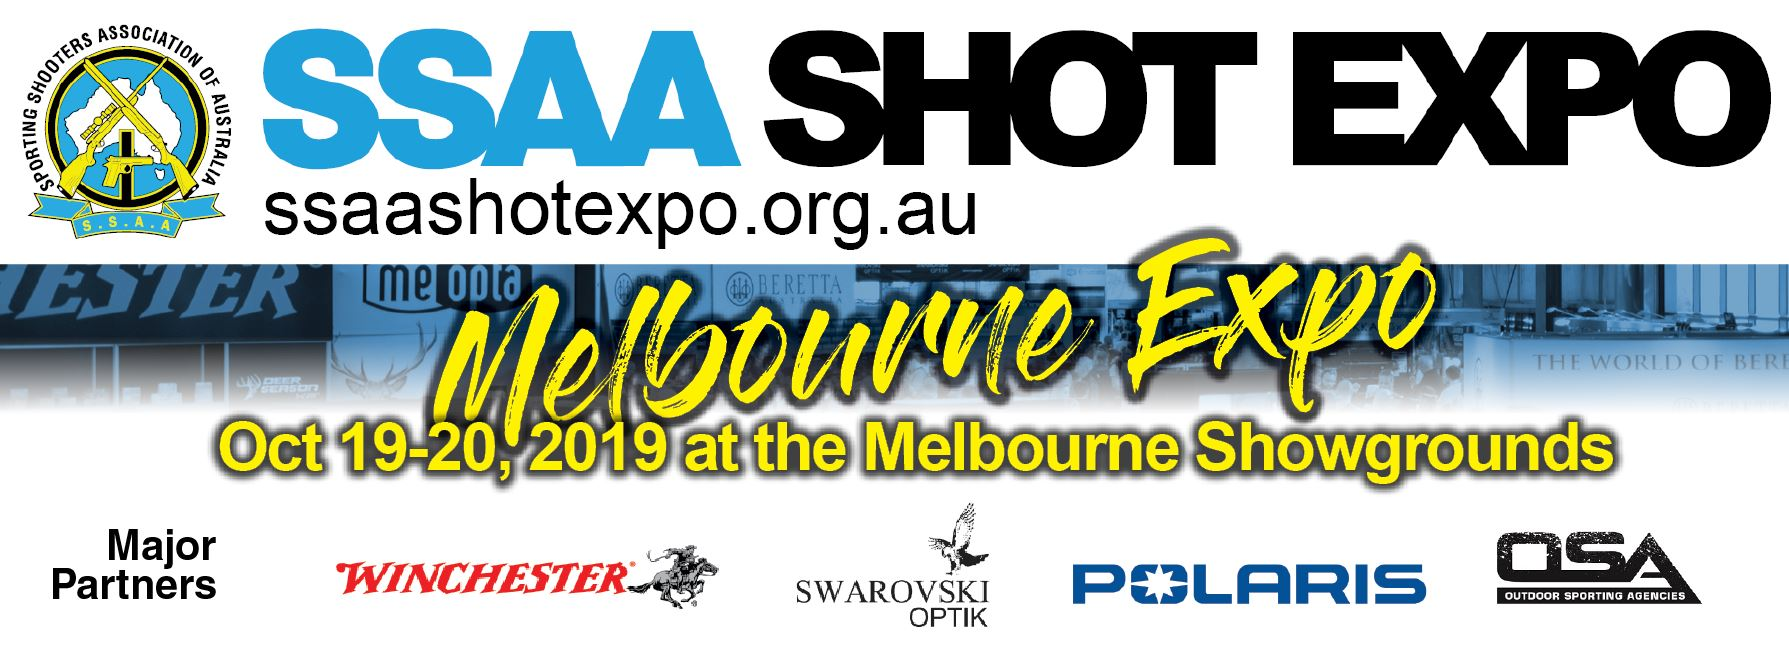 Tickets for SSAA SHOT Expo Melbourne 2019 in Ascot Vale from Ticketbooth